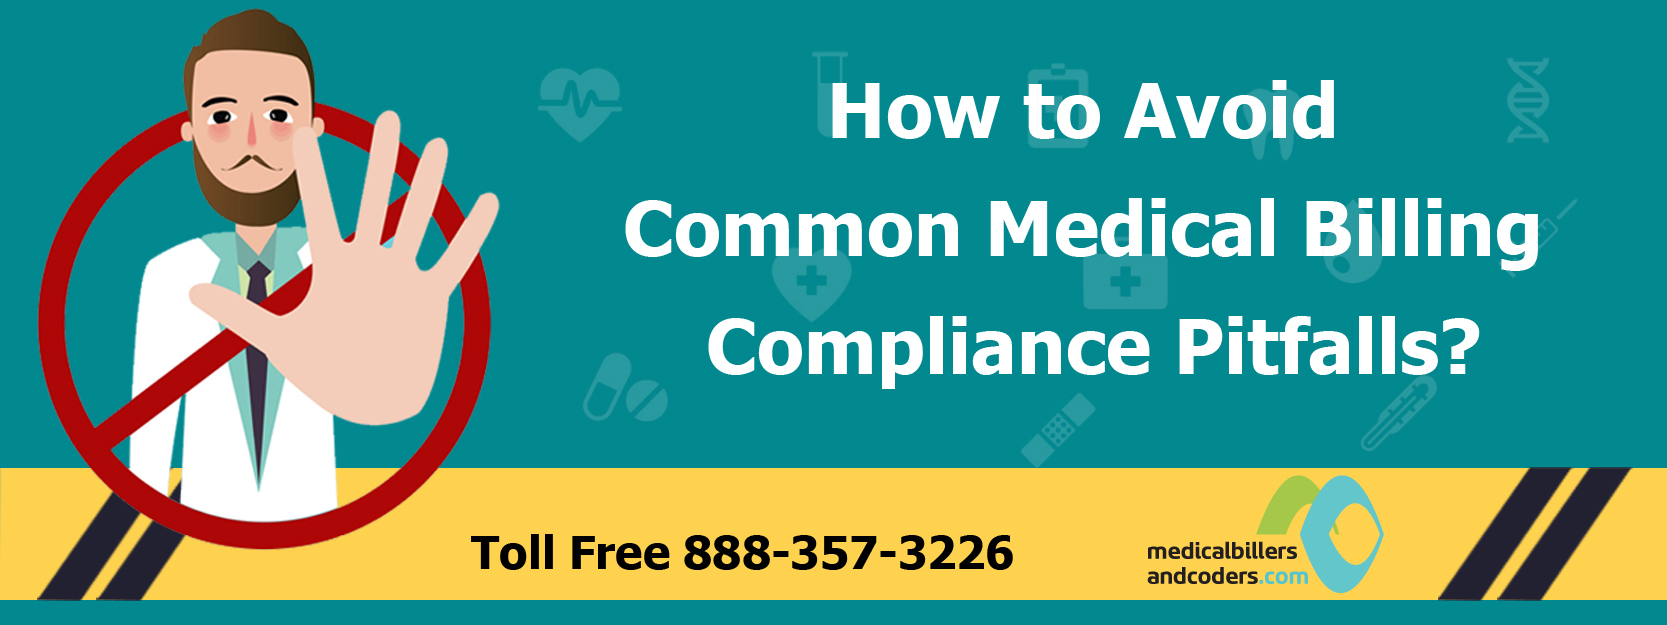 How to Avoid Common Medical Billing Compliance Pitfalls?